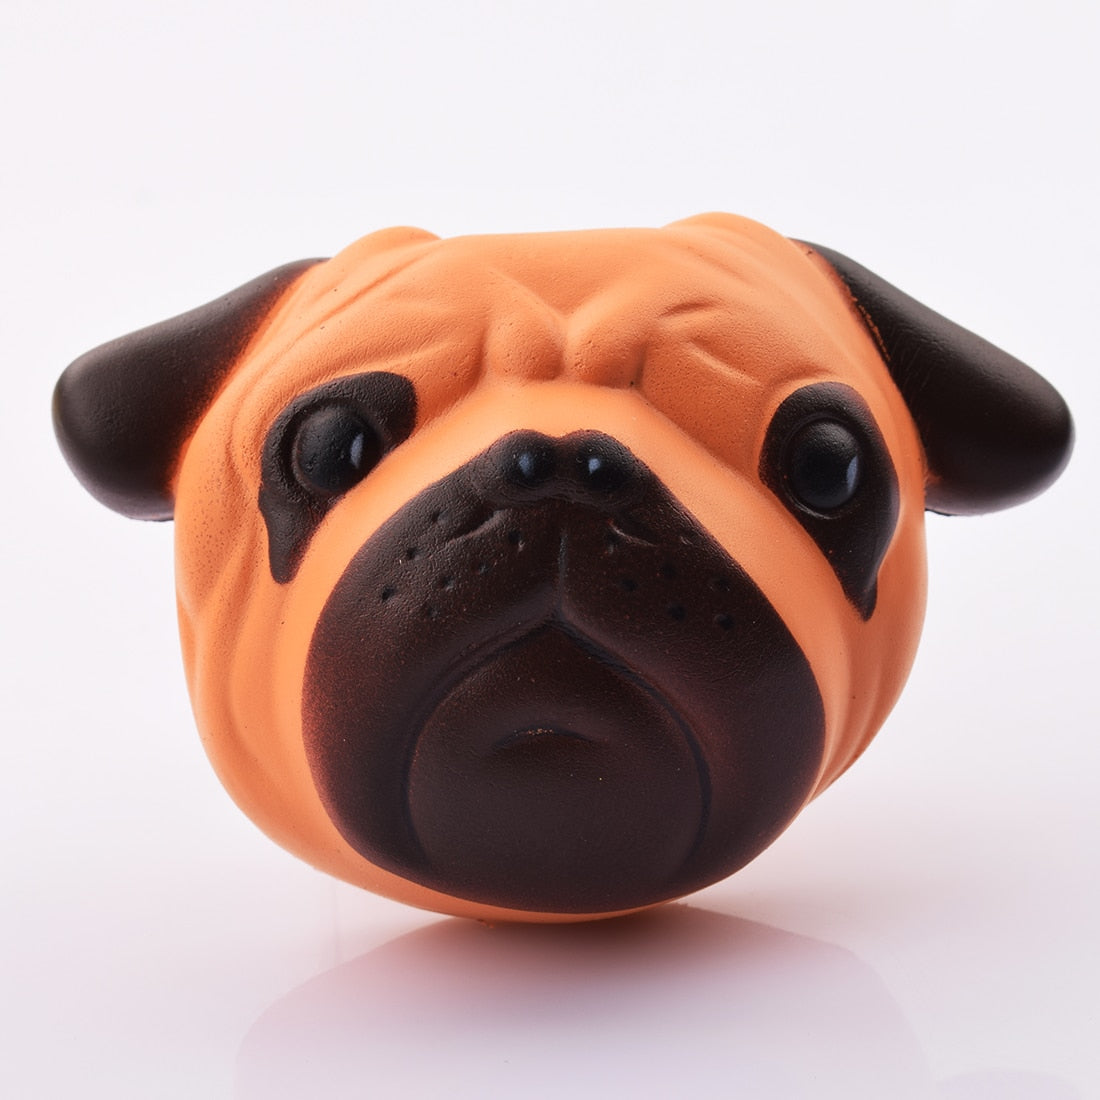 Kawaii Squishy Dog Face Bread Soft Slow Rising Phone Straps DIY Pendant Stretchy Squeeze Cream Scented Cake Kid Toy Gift P15-teefury